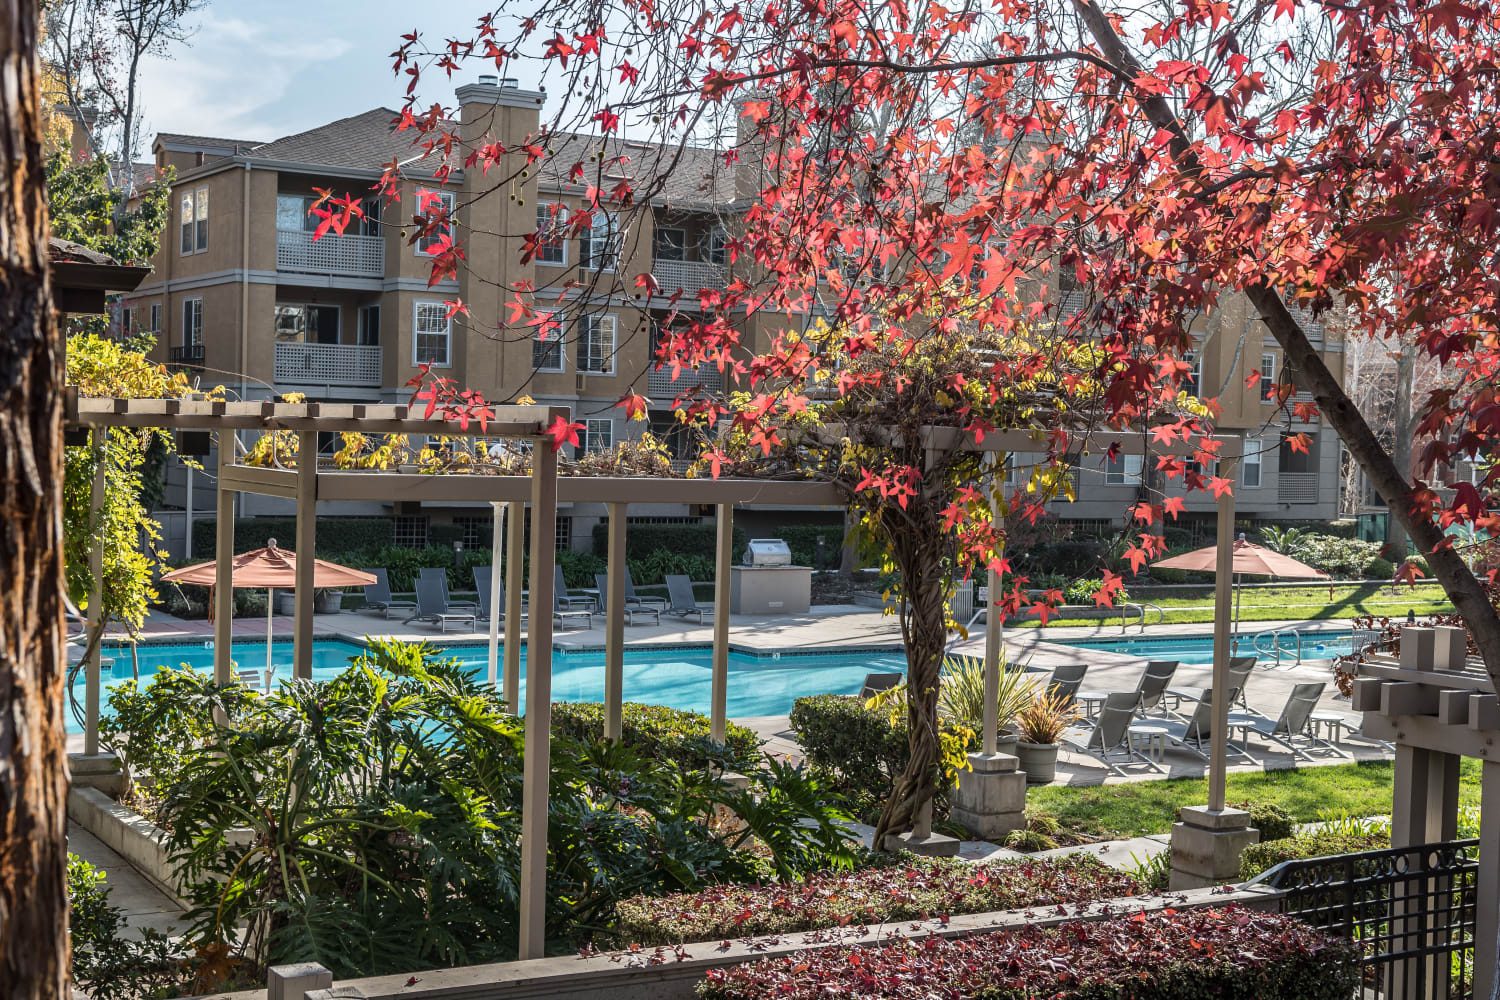 Enjoy a swimming pool at Bella Vista Apartments in Santa Clara, California